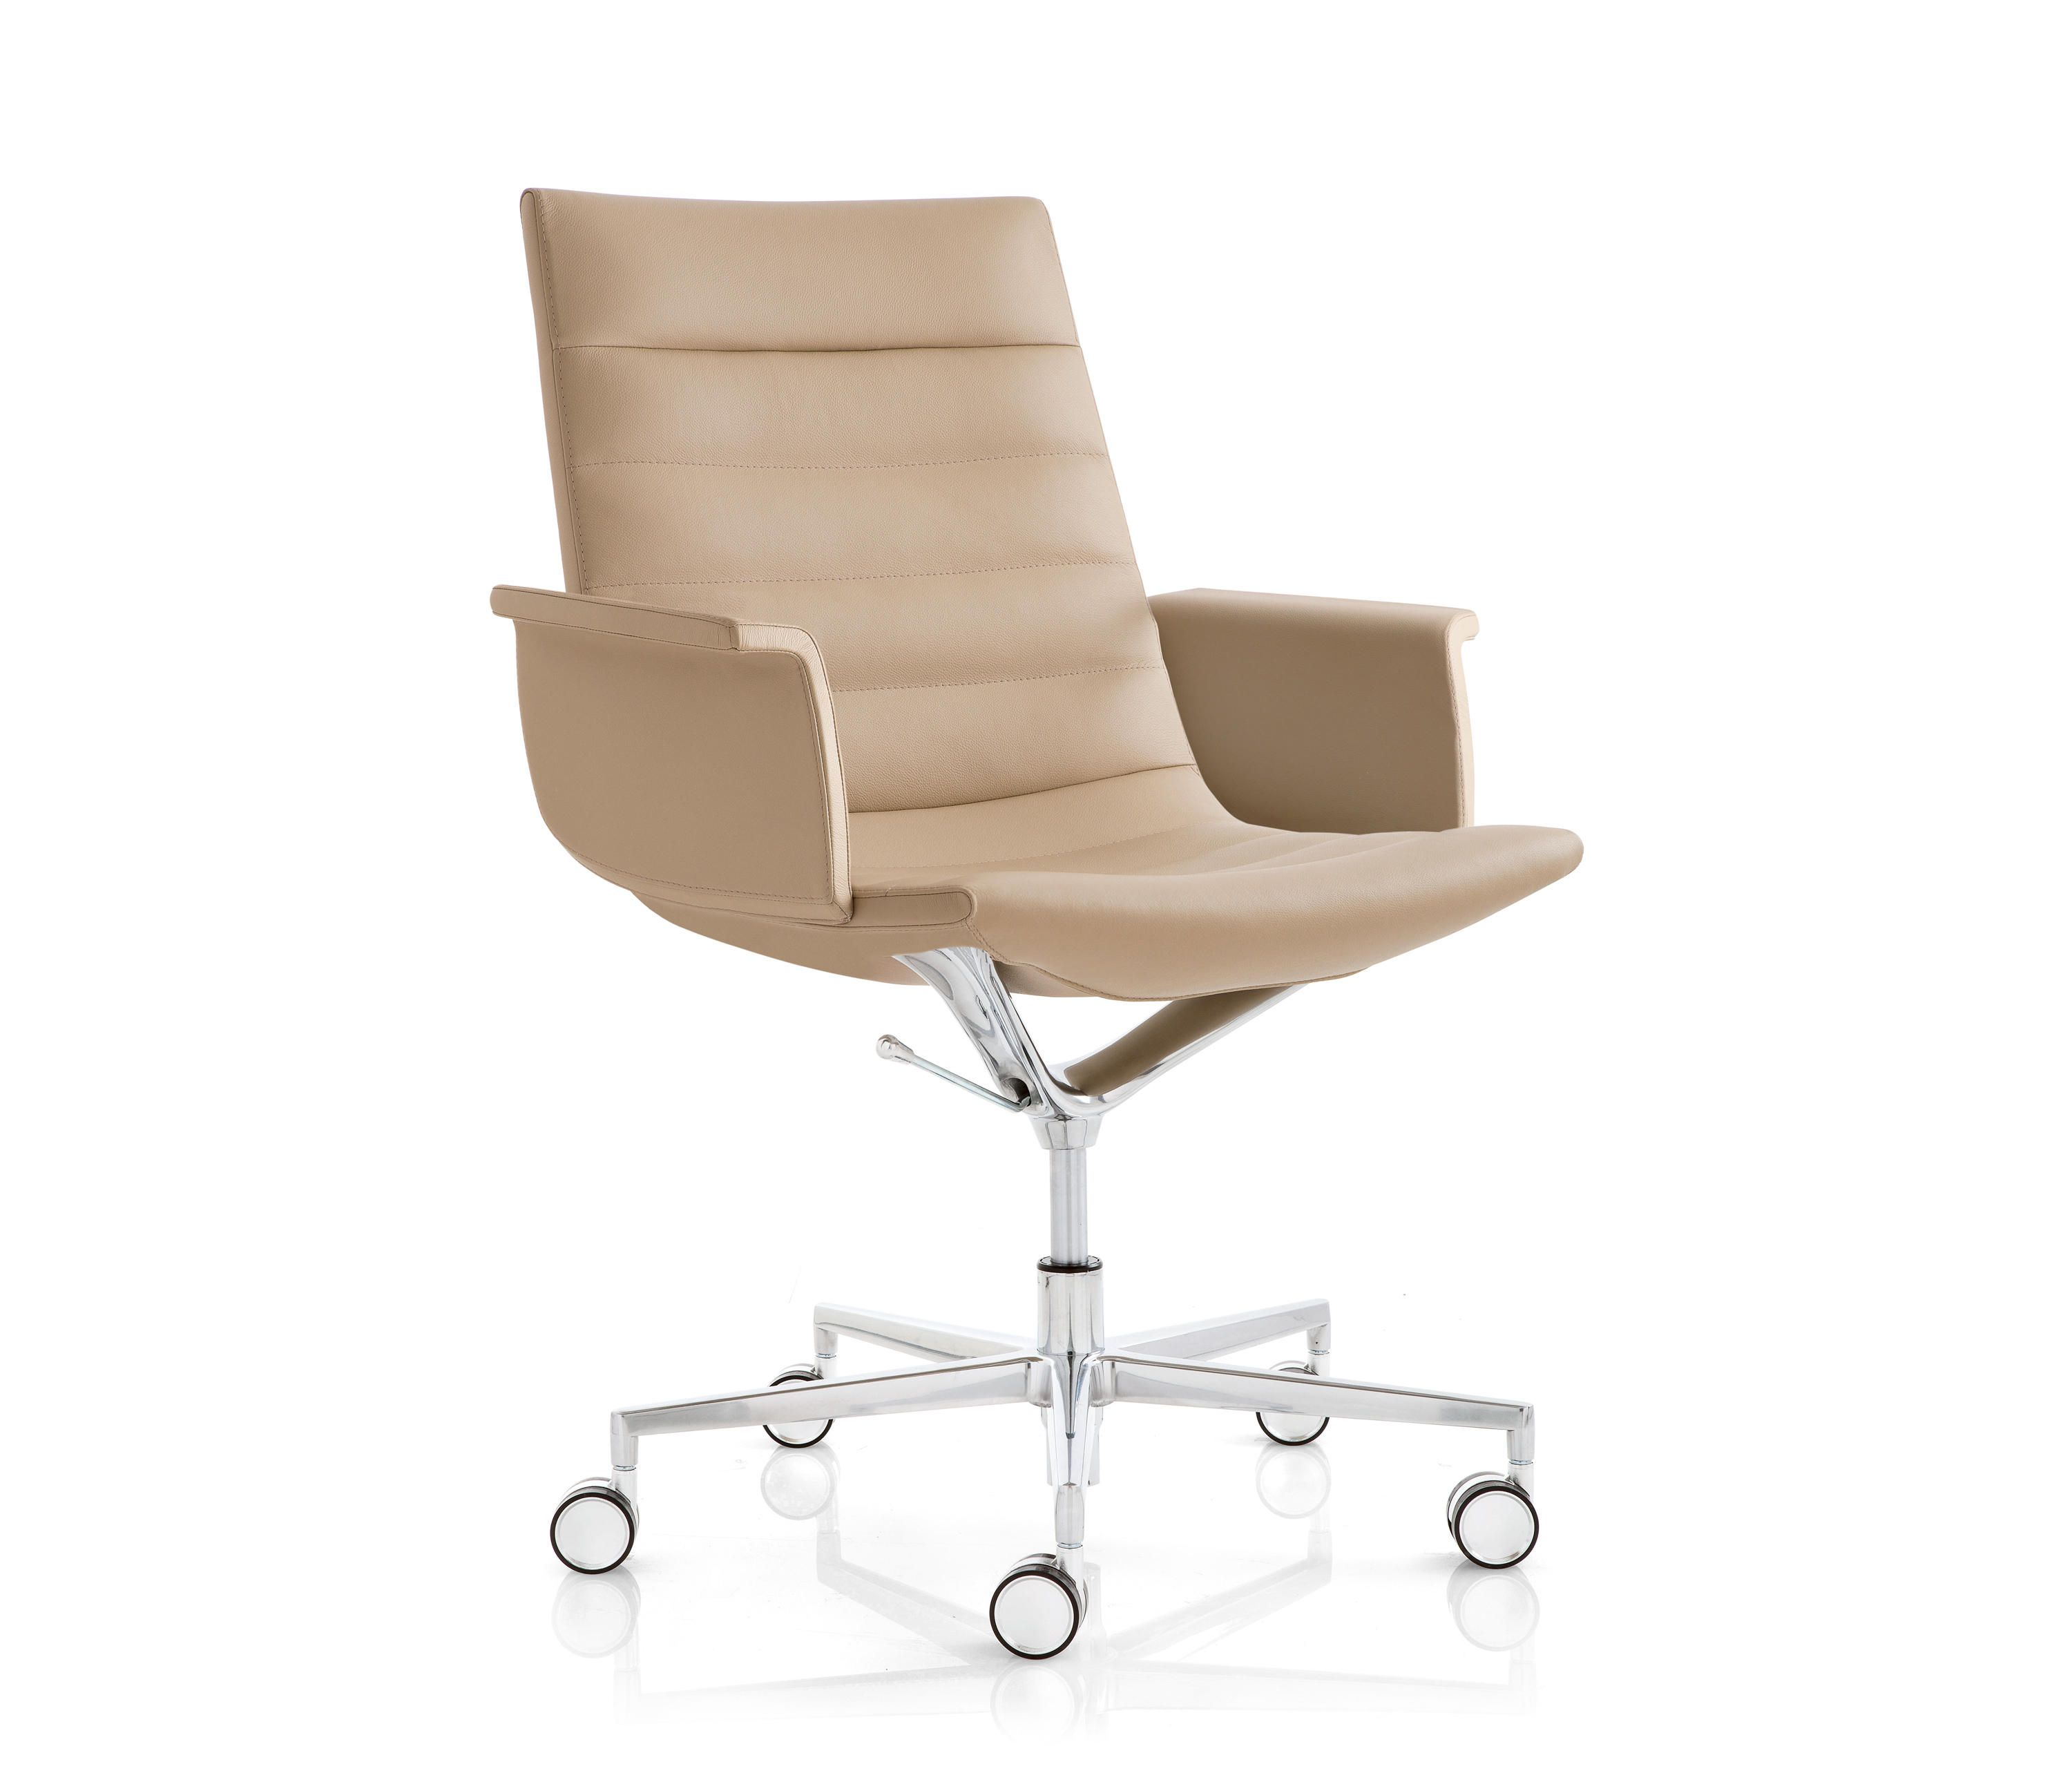 Key Designer Chairs From Emmegi All Information High Resolution Images Cads Catalogues Contact Information Chair Office Chair Office Chair Design